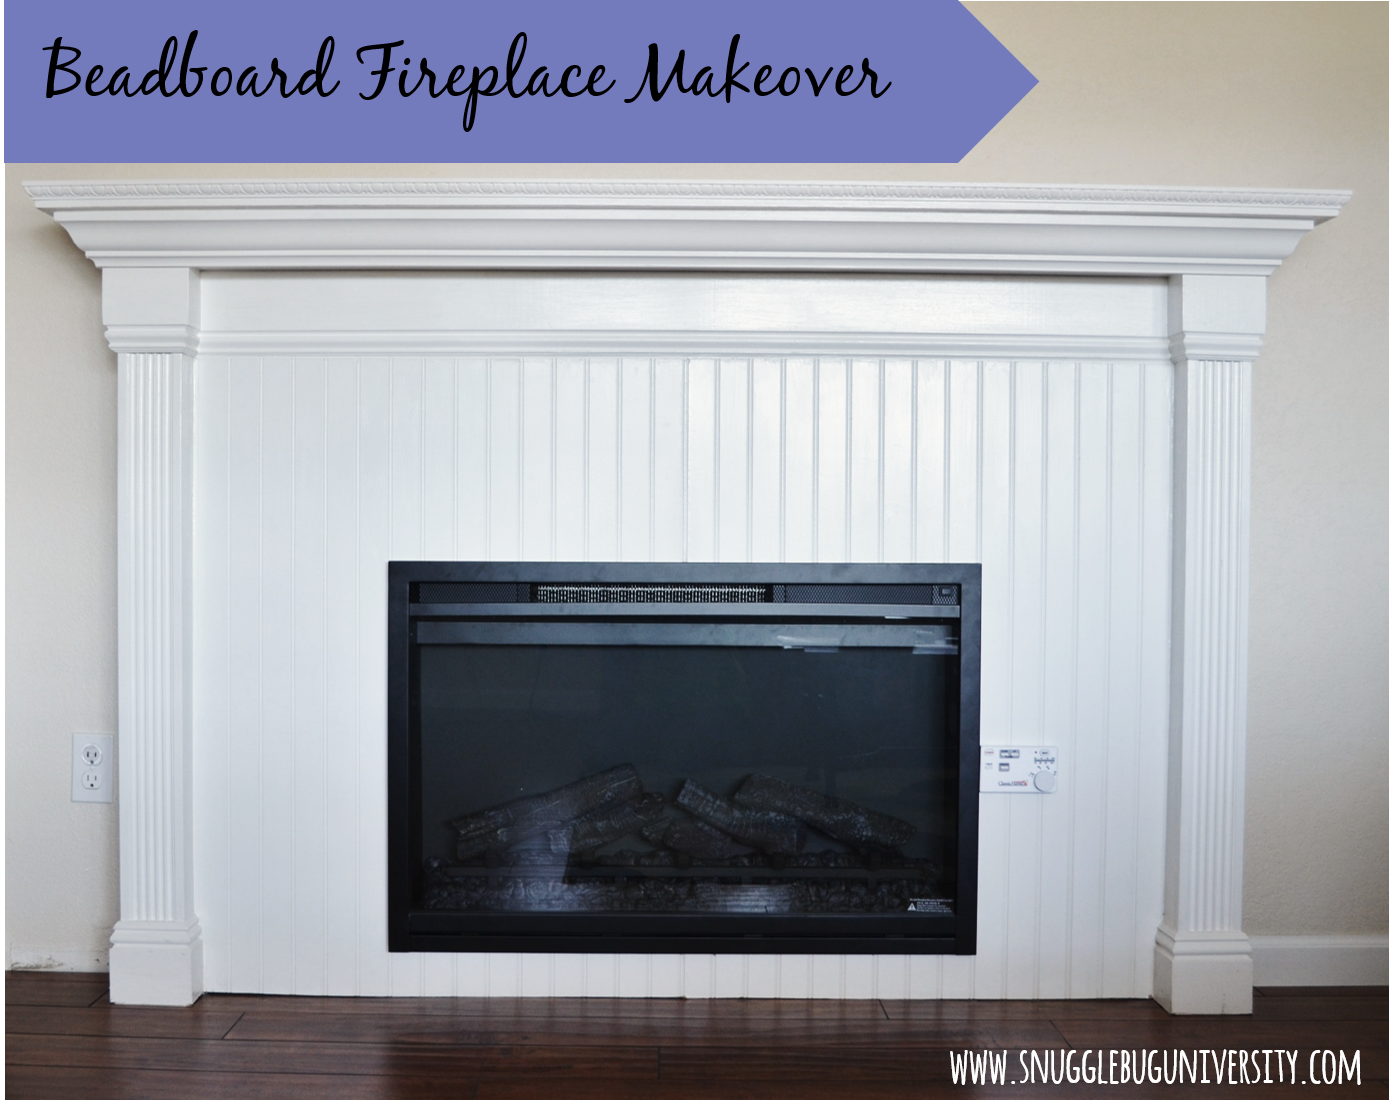 Snugglebug University: Beadboard Fireplace Makeover